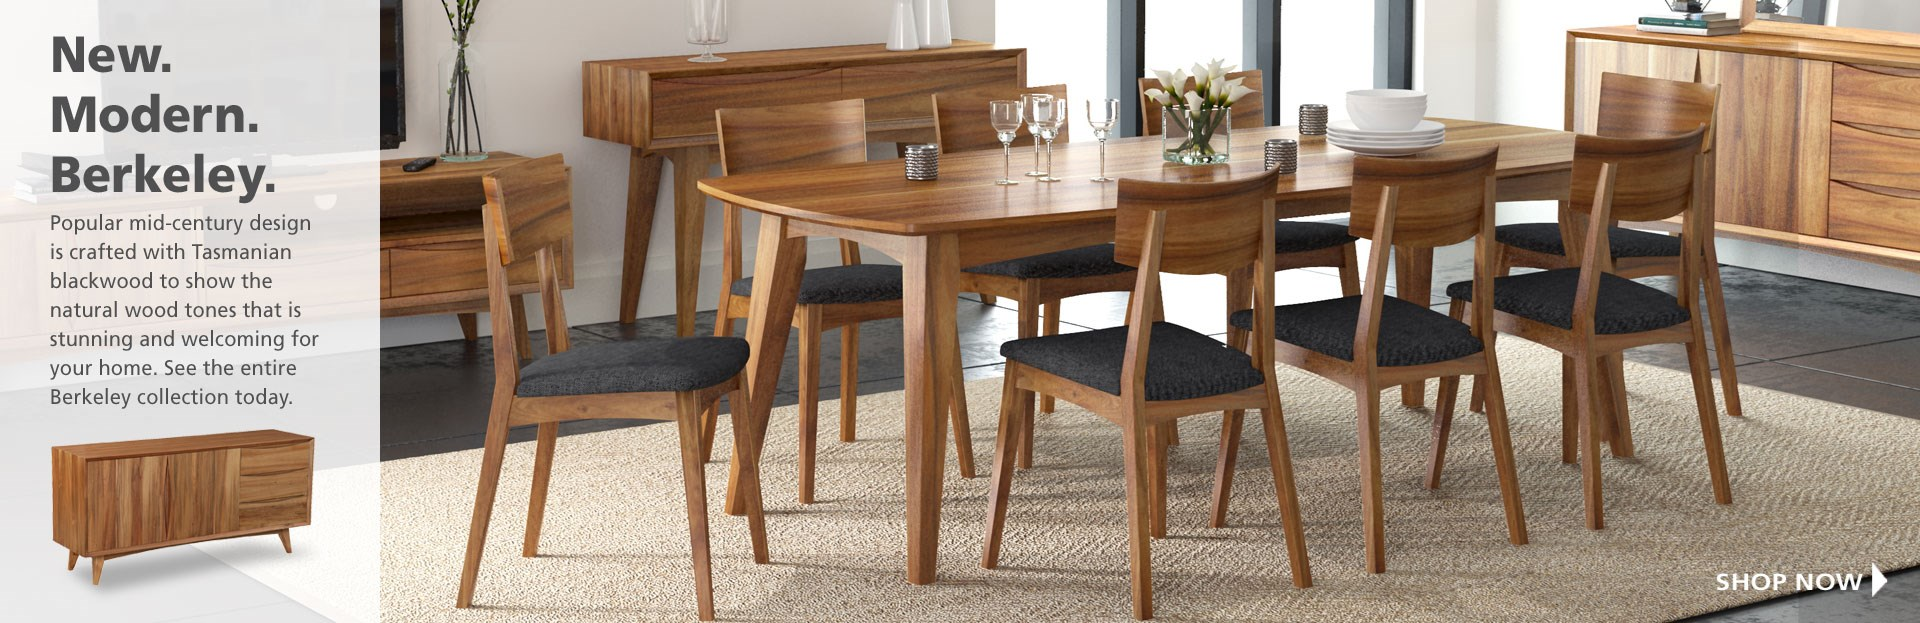 Berkeley dining table and chairs